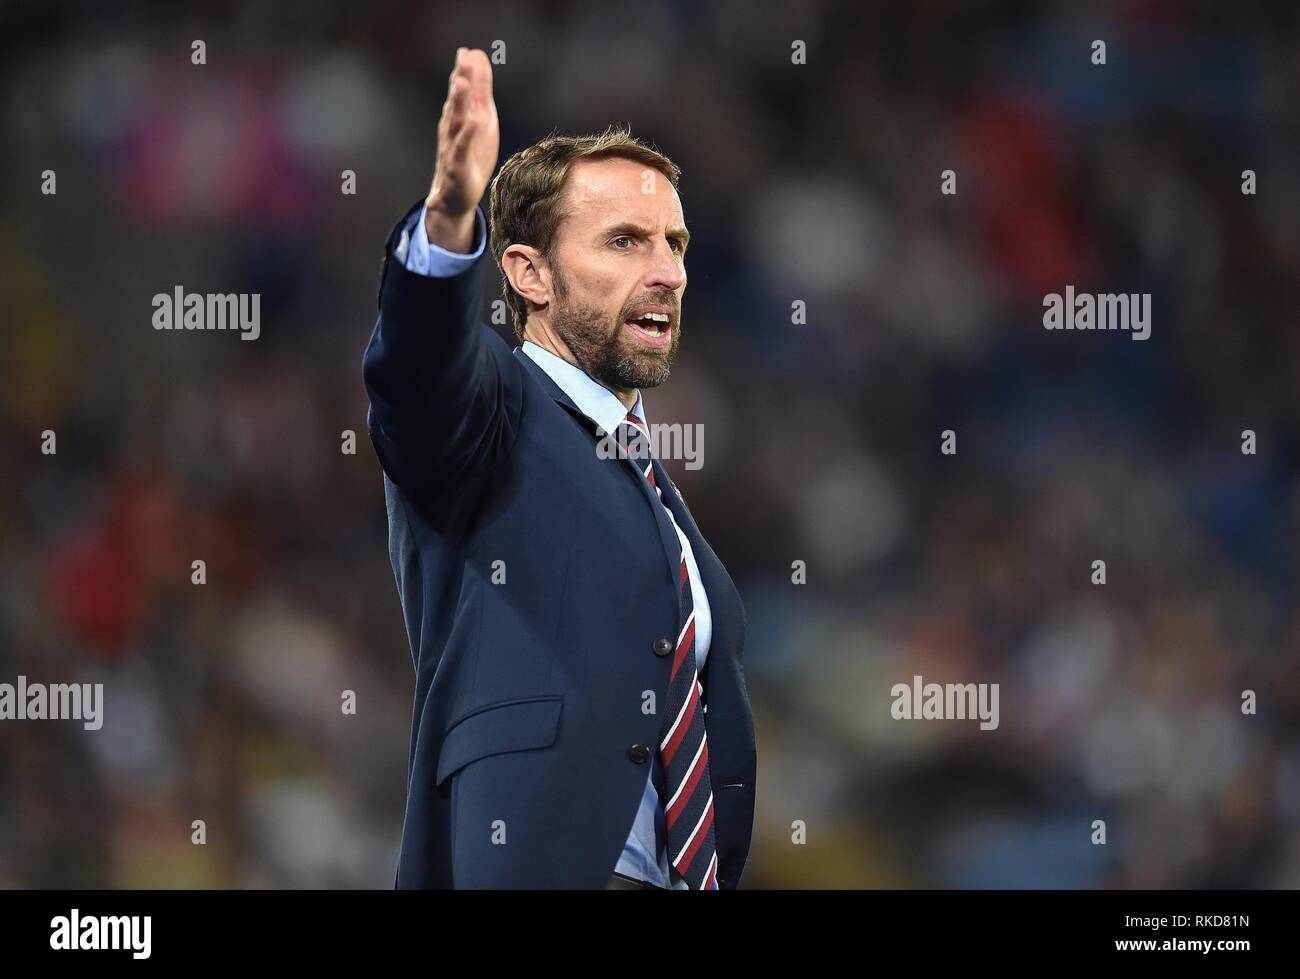 ENGLAND MANAGER GARETH SOUTHGATE ISSUES INSTRUCTIONS  ENGLAND V SWITZERLAND INTERNATIONAL FRIENDLY  ENGLAND V SWITZERLAND INTERNATIONAL FRIENDLY  LEICESTER, LEICESTER, ENGLAND  11 September 2018  GBC11850        WARNING! This Photograph May Only Be Used For Newspaper And/Or Magazine Editorial Purposes. May Not Be Used For Publications Involving 1 player, 1 Club Or 1 Competition  Without Written Authorisation From Football DataCo Ltd.  For Any Queries, Please Contact Football DataCo Ltd on +44 (0) 207 864 9121 Stock Photo